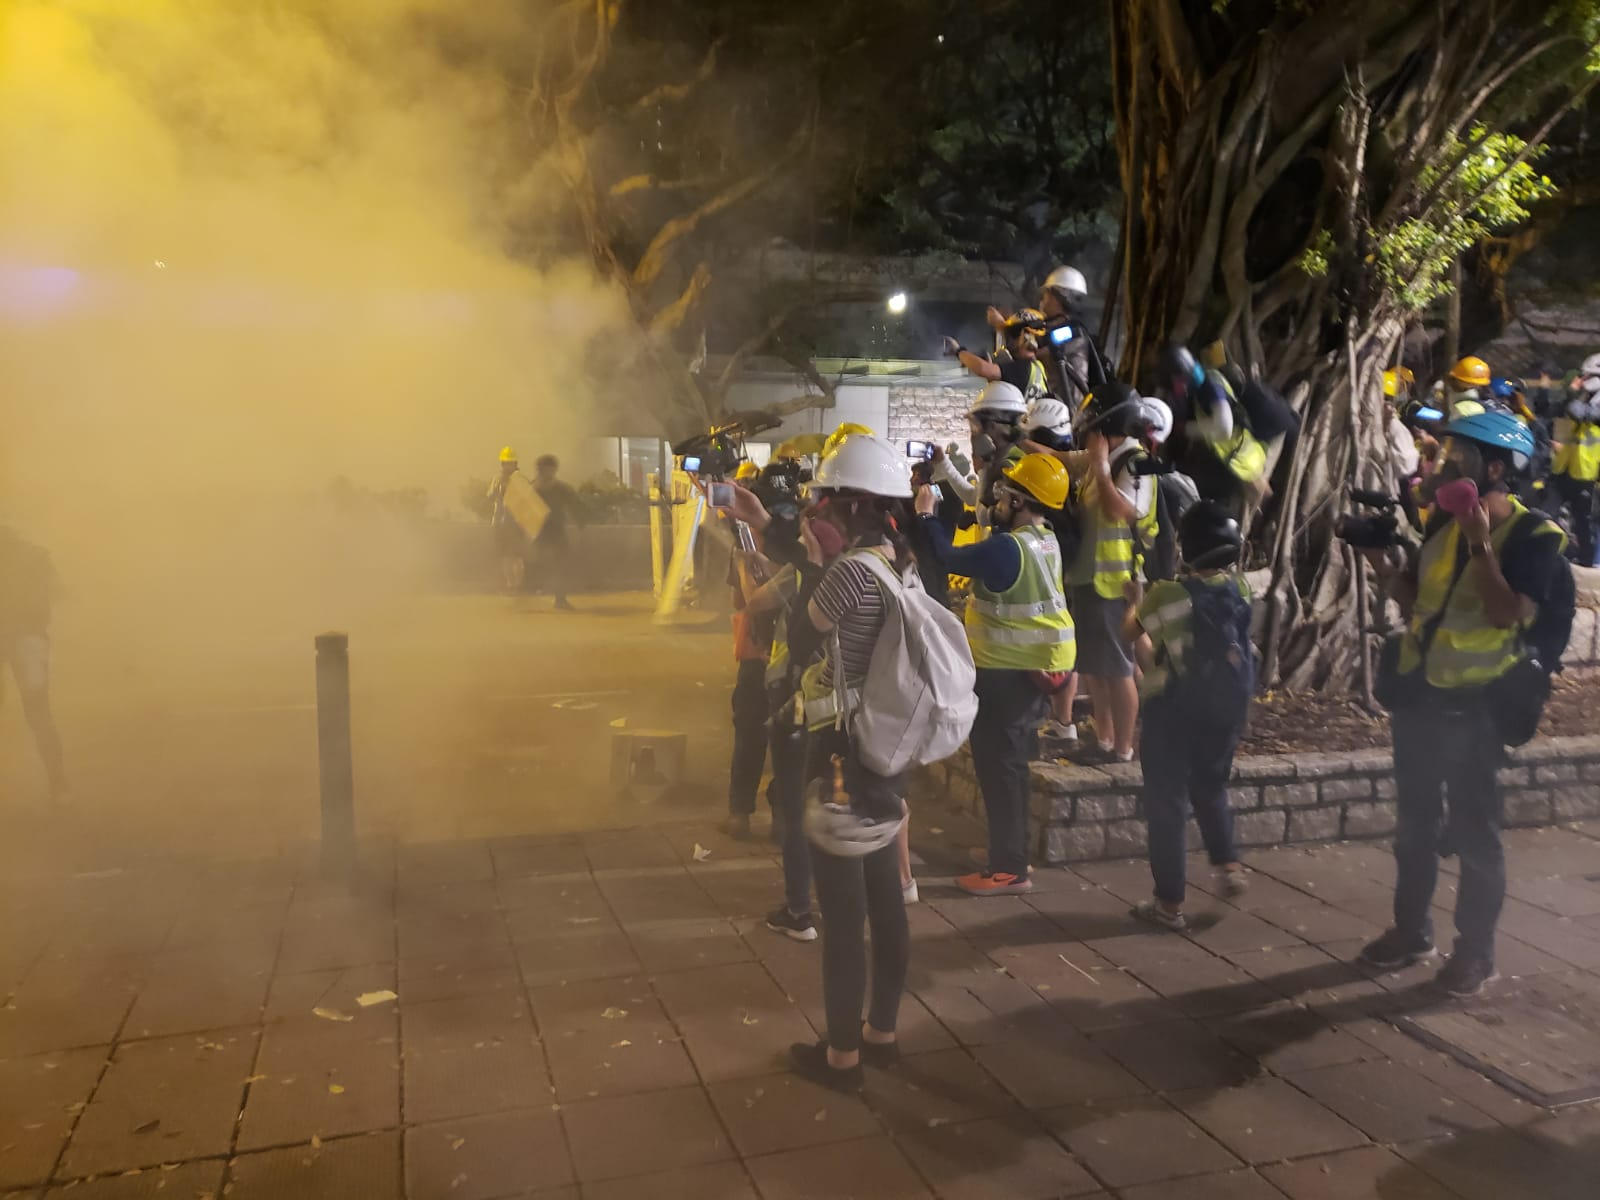 Tear gas is fired at protesters surging forward. Ben Westcott/CNN